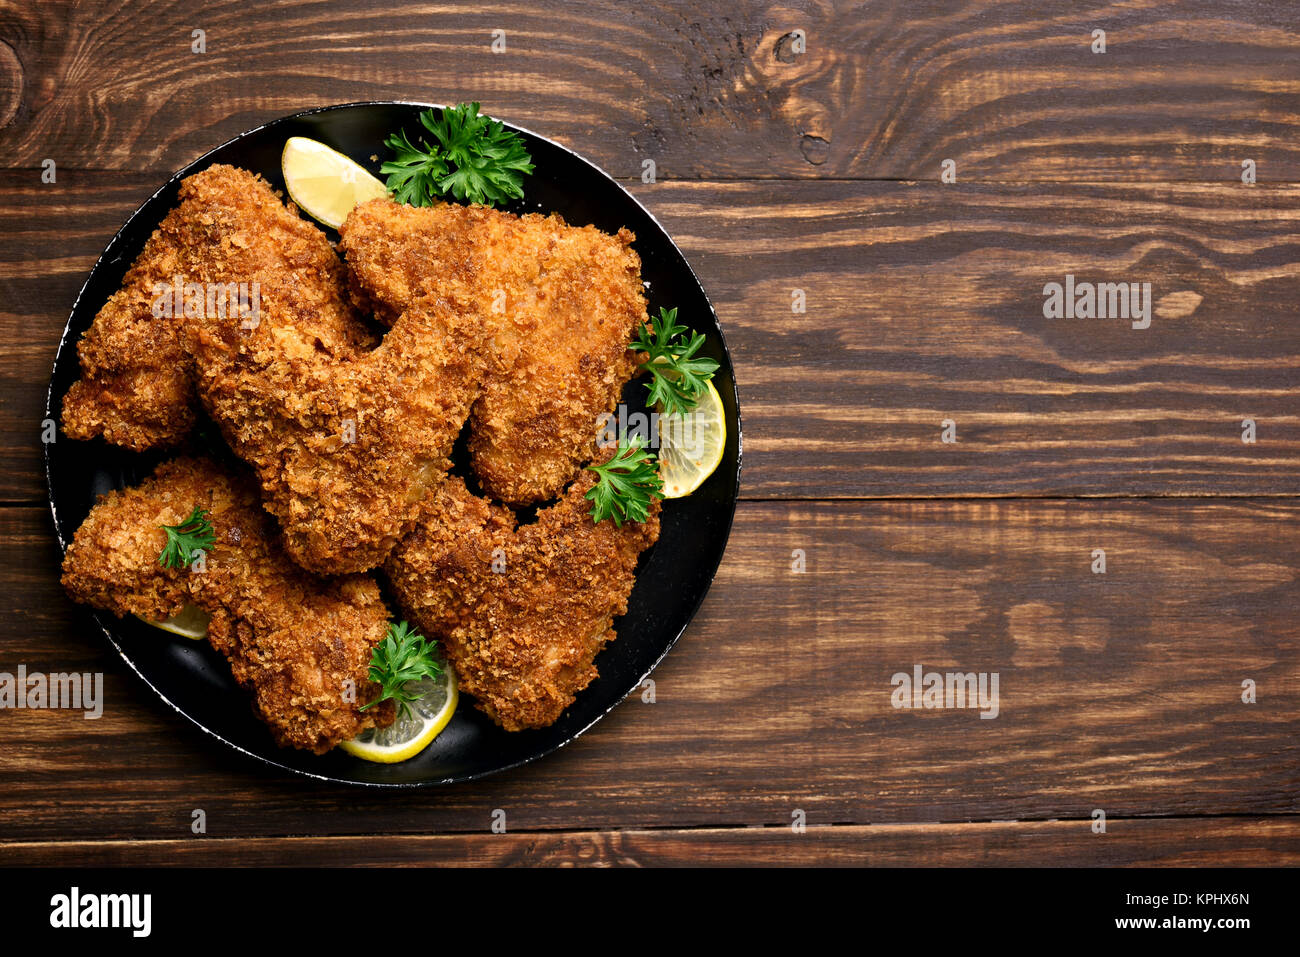 Fried breaded chicken wings on plate over wooden background with copy space. Top view, flat lay food - Stock Image